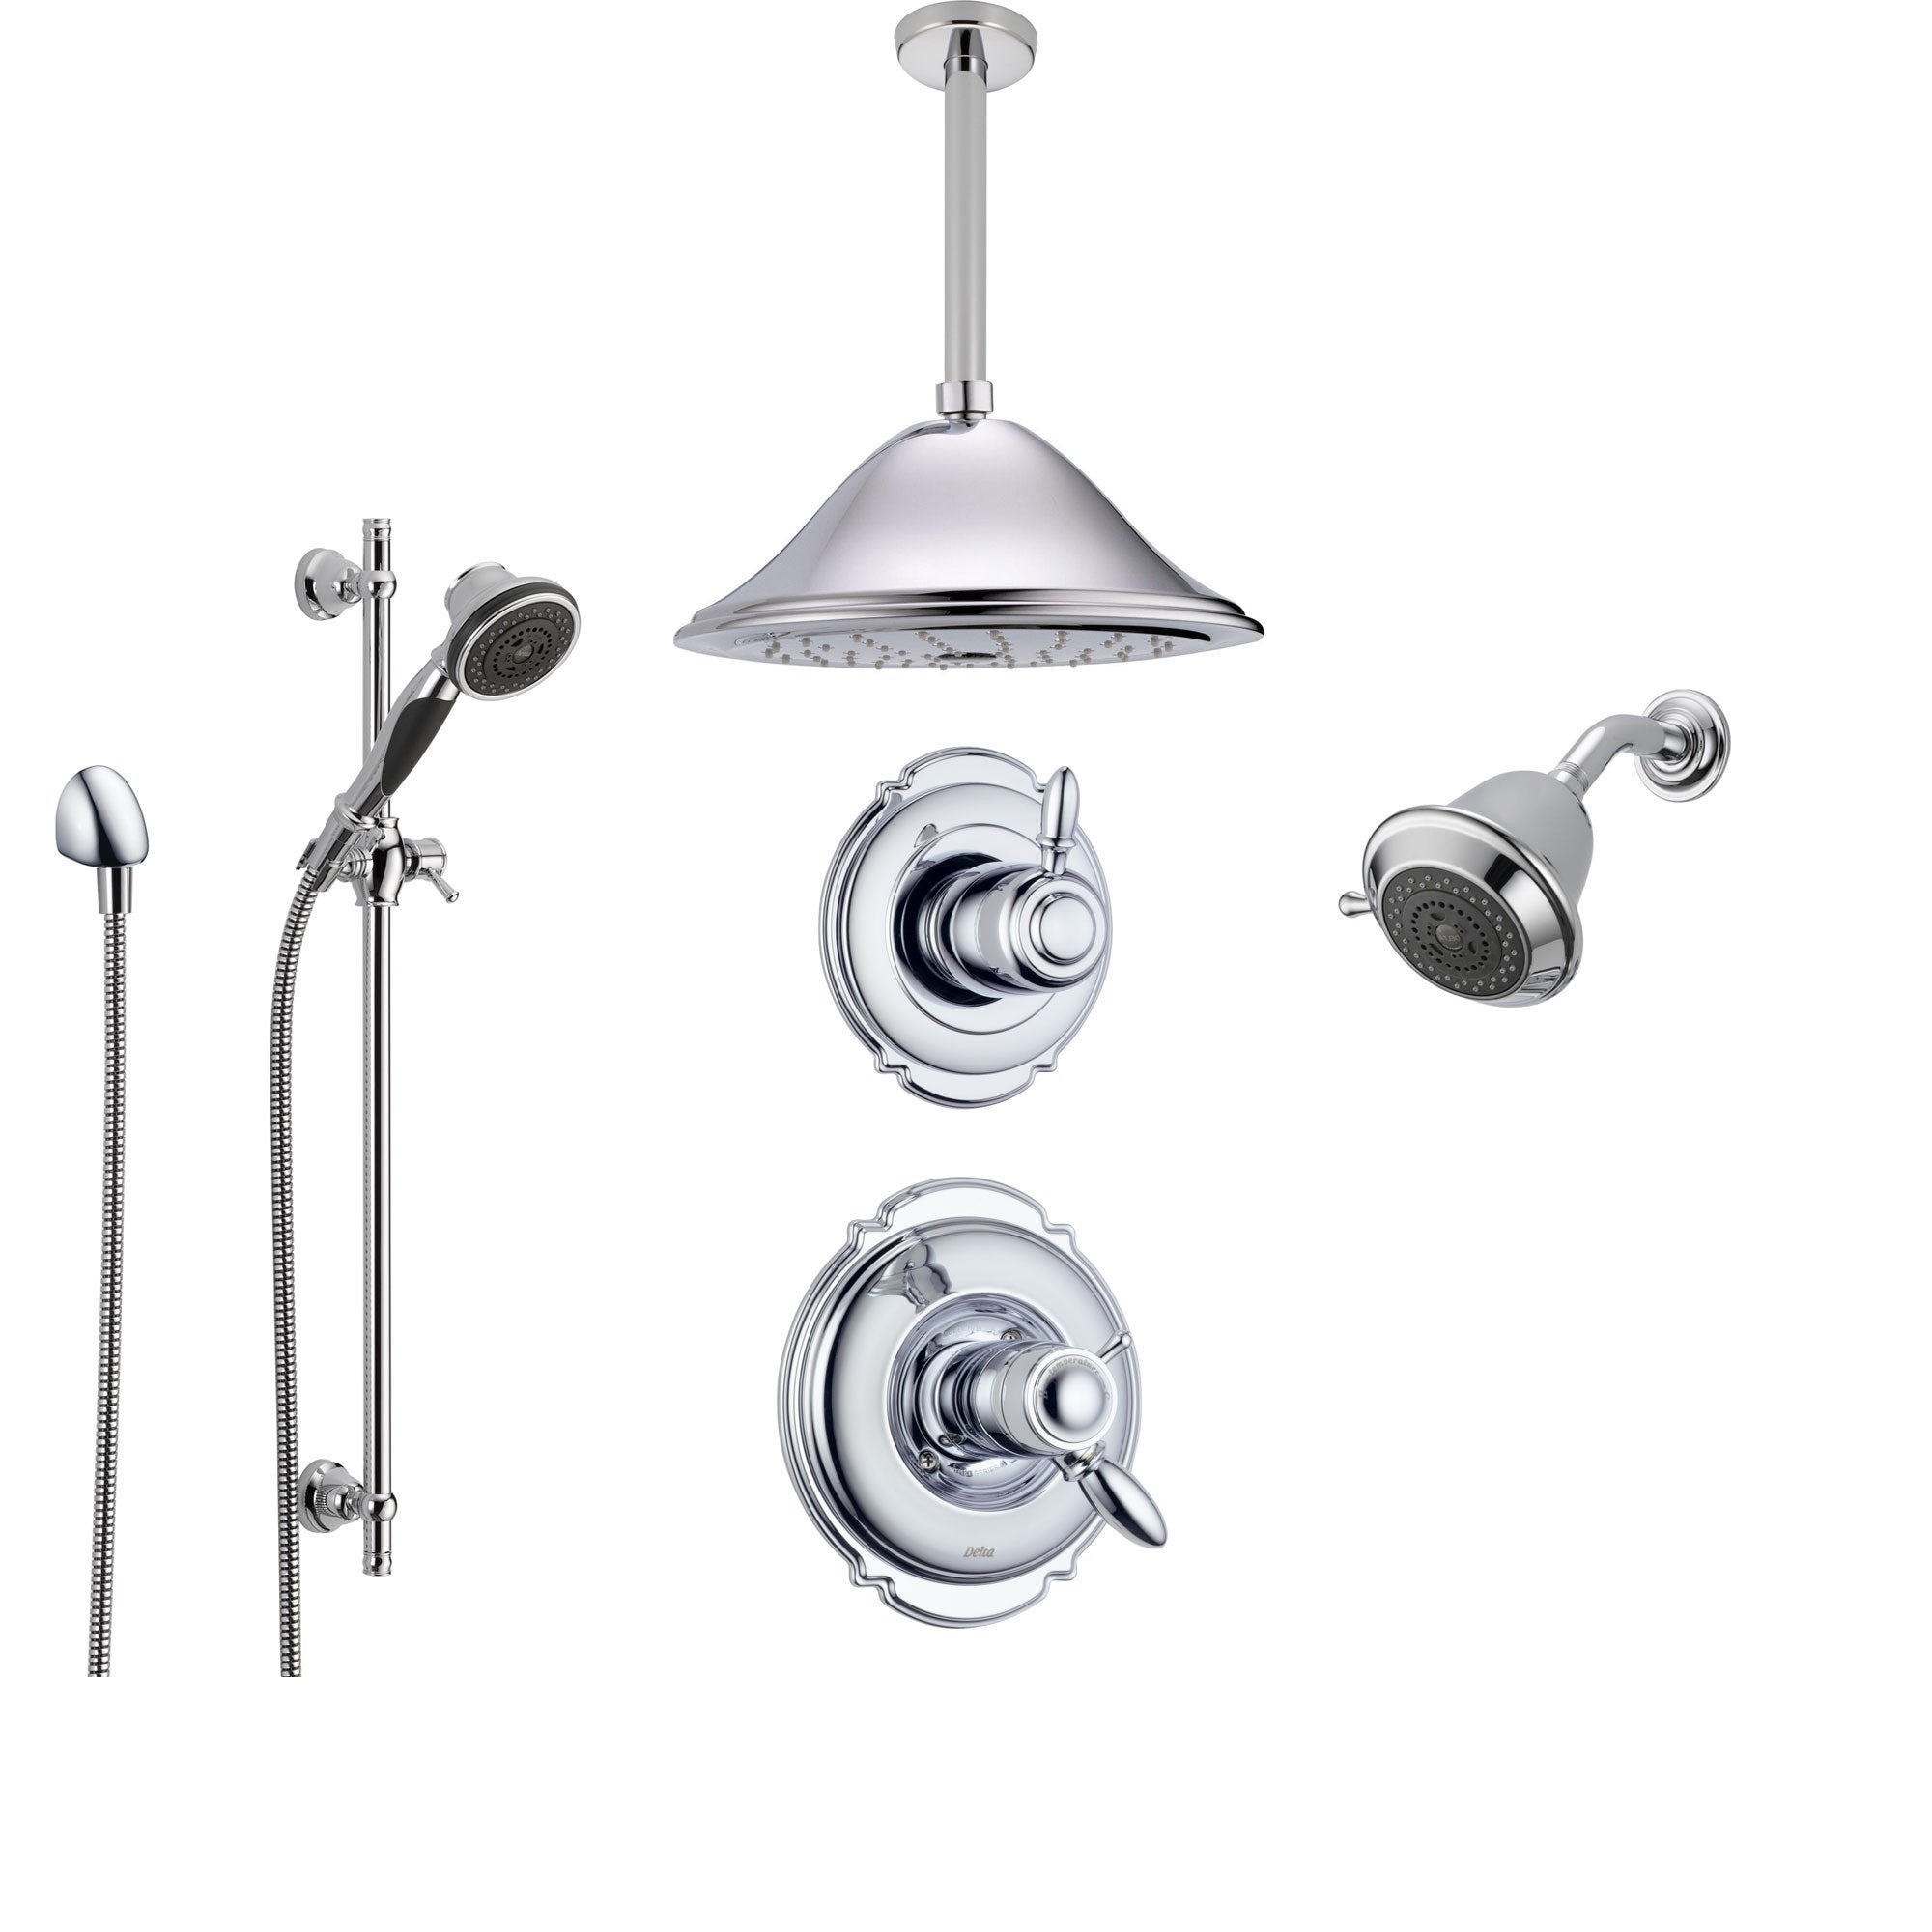 Delta Victorian Chrome Shower System With Thermostatic Shower Handle 6 Setting Diverter Large Ceiling Mount Rain Showerhead Handheld Shower And